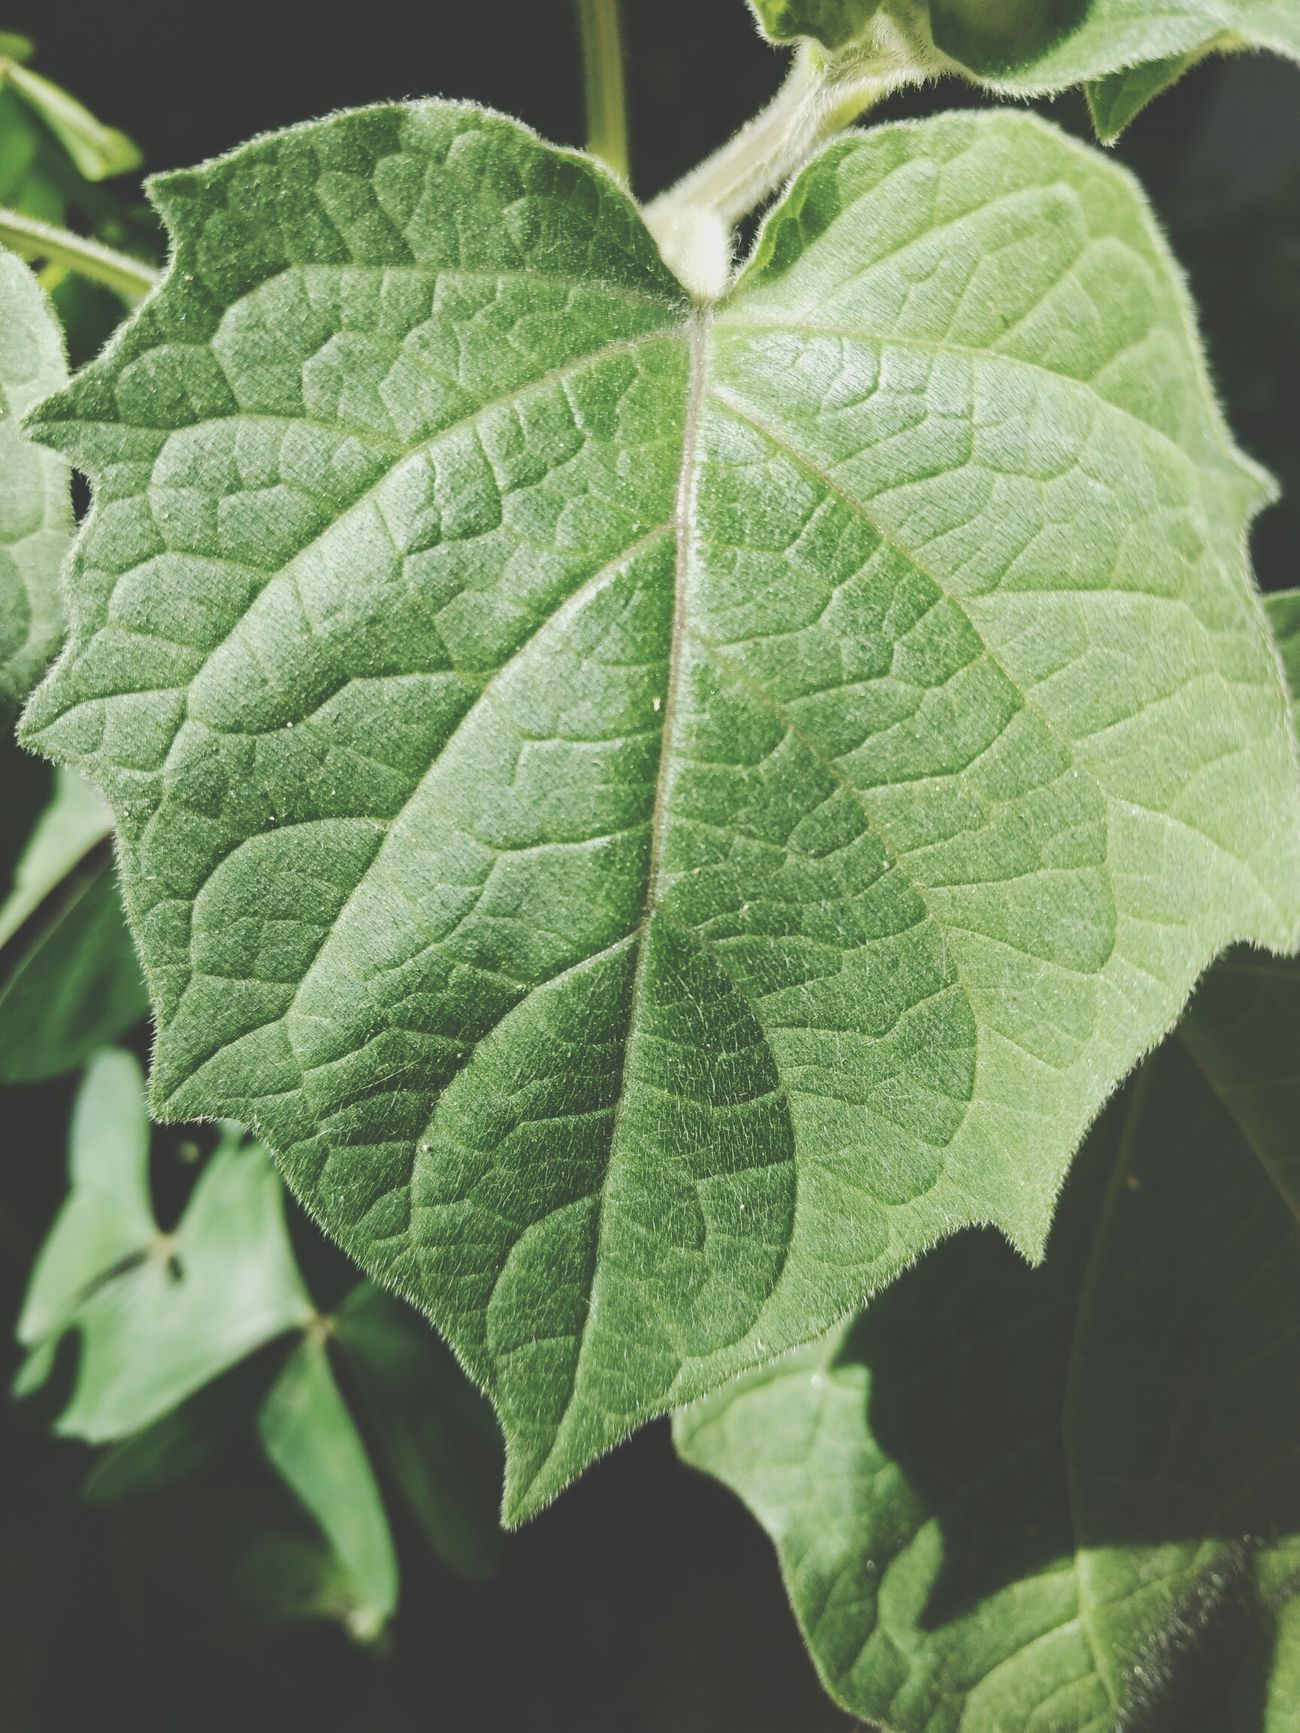 Green Color Leaf Freshness Plant Leaf Vein Close-up Nature Growth Beauty In Nature No People Outdoors Water Tree Day Huawei P9 Plus Huawei P9. My Year My View Mision  Misiones Huaweiphotography Mision  My Flower Nature Clear Sky